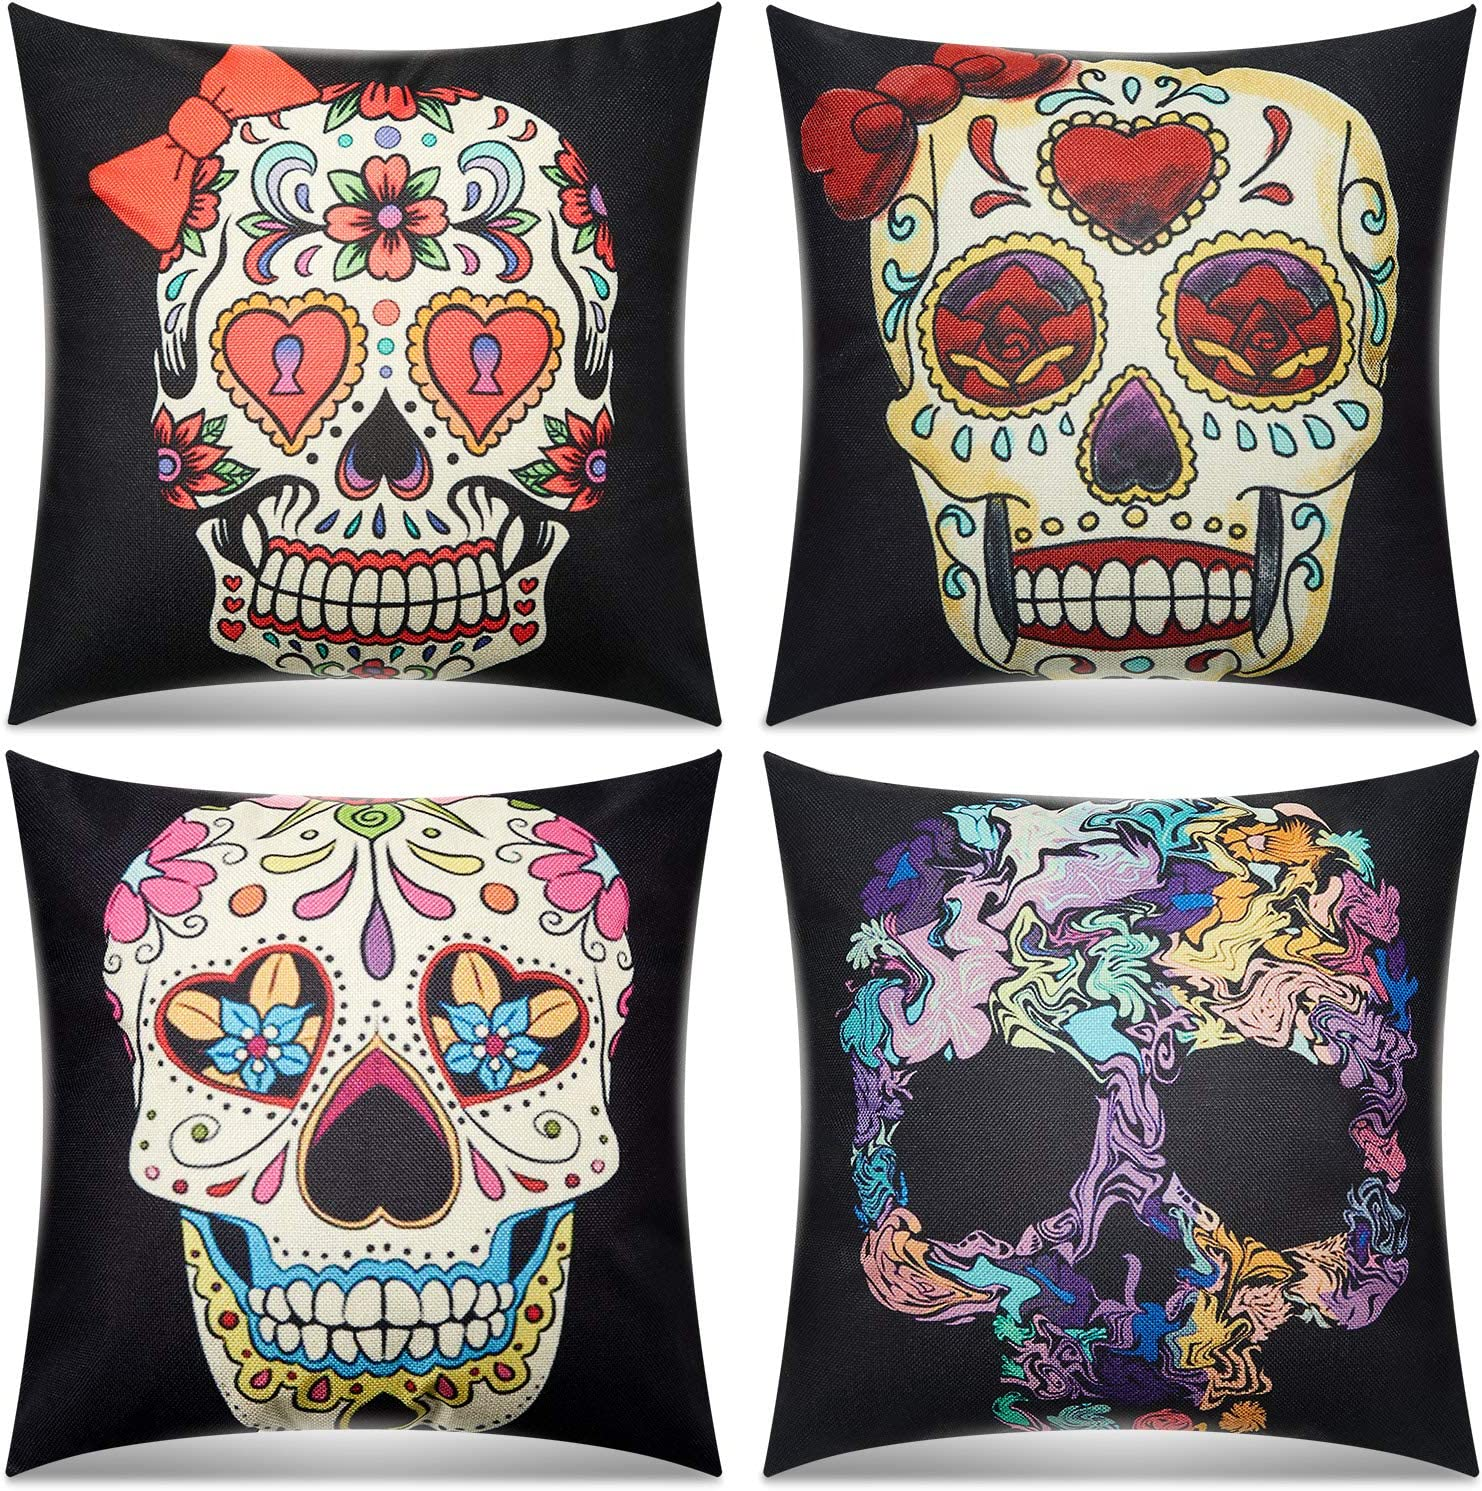 4 Pieces Mexican Day of The Dead Sugar Skull Pillow Covers Halloween Decorative Pillow Covers Square Linen Cushion Pillow Cover for Home Couch, Bed, Patio, Sofa and Balcony, 18 x 18 Inch